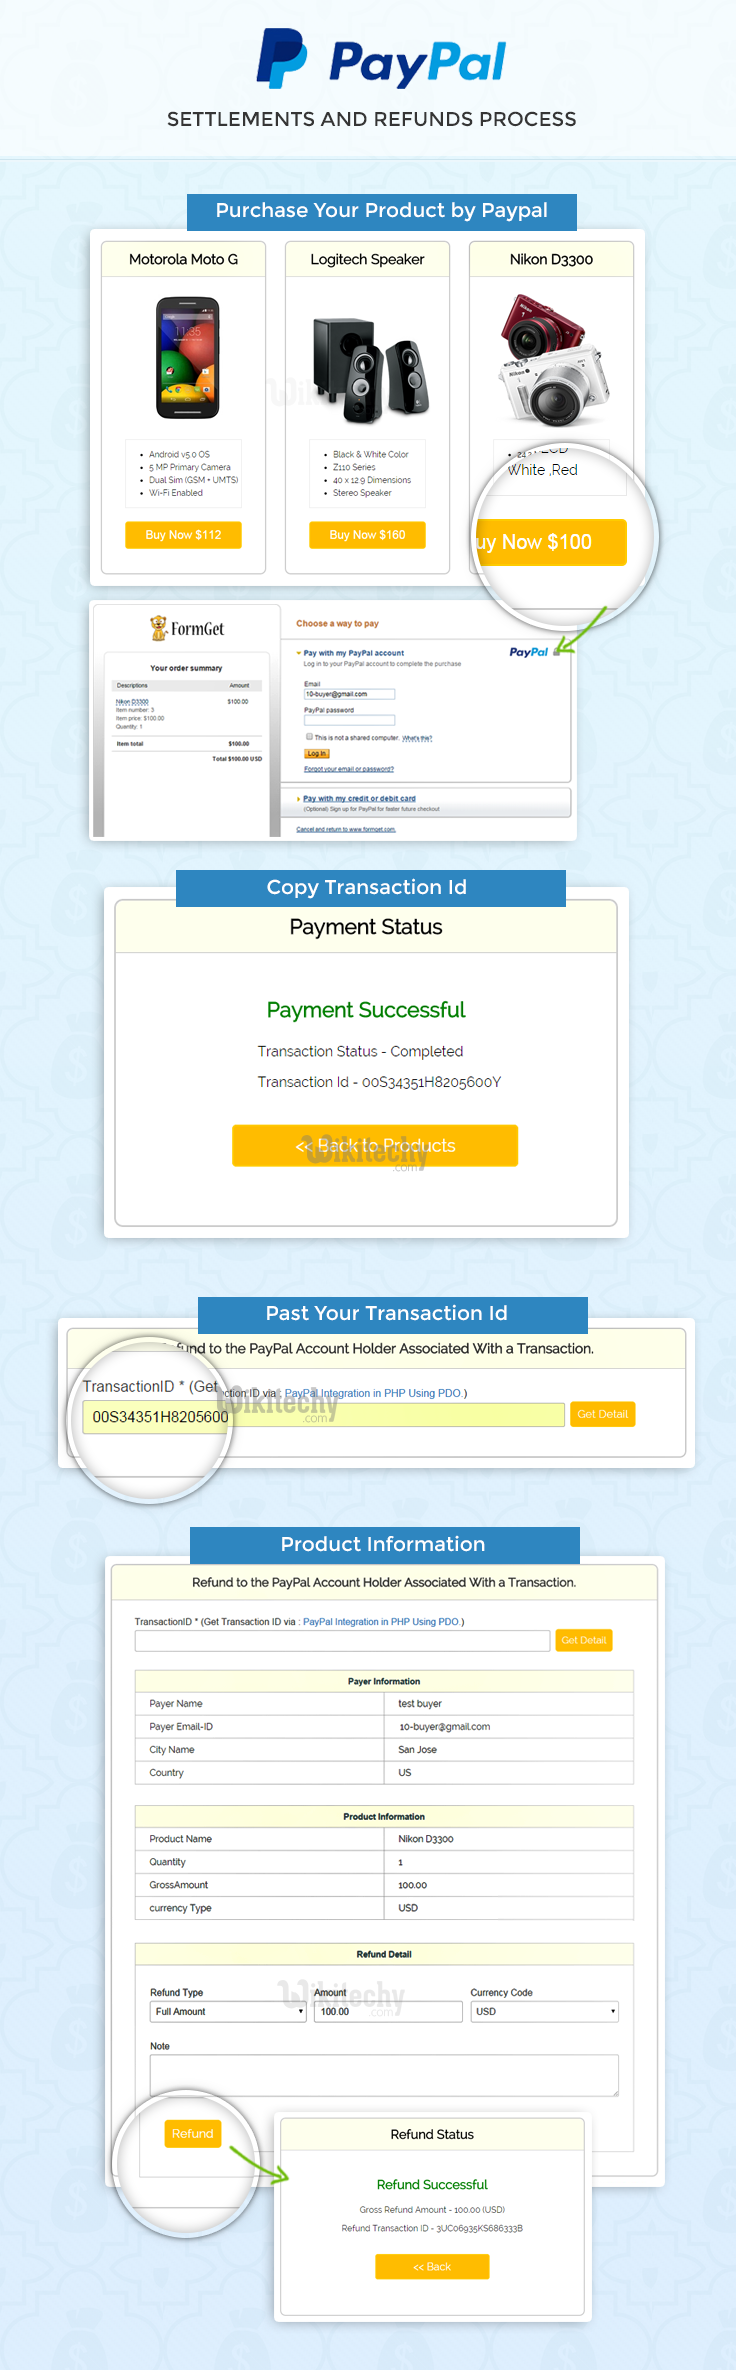 paypal-refund-api-settlements-and-refund-process